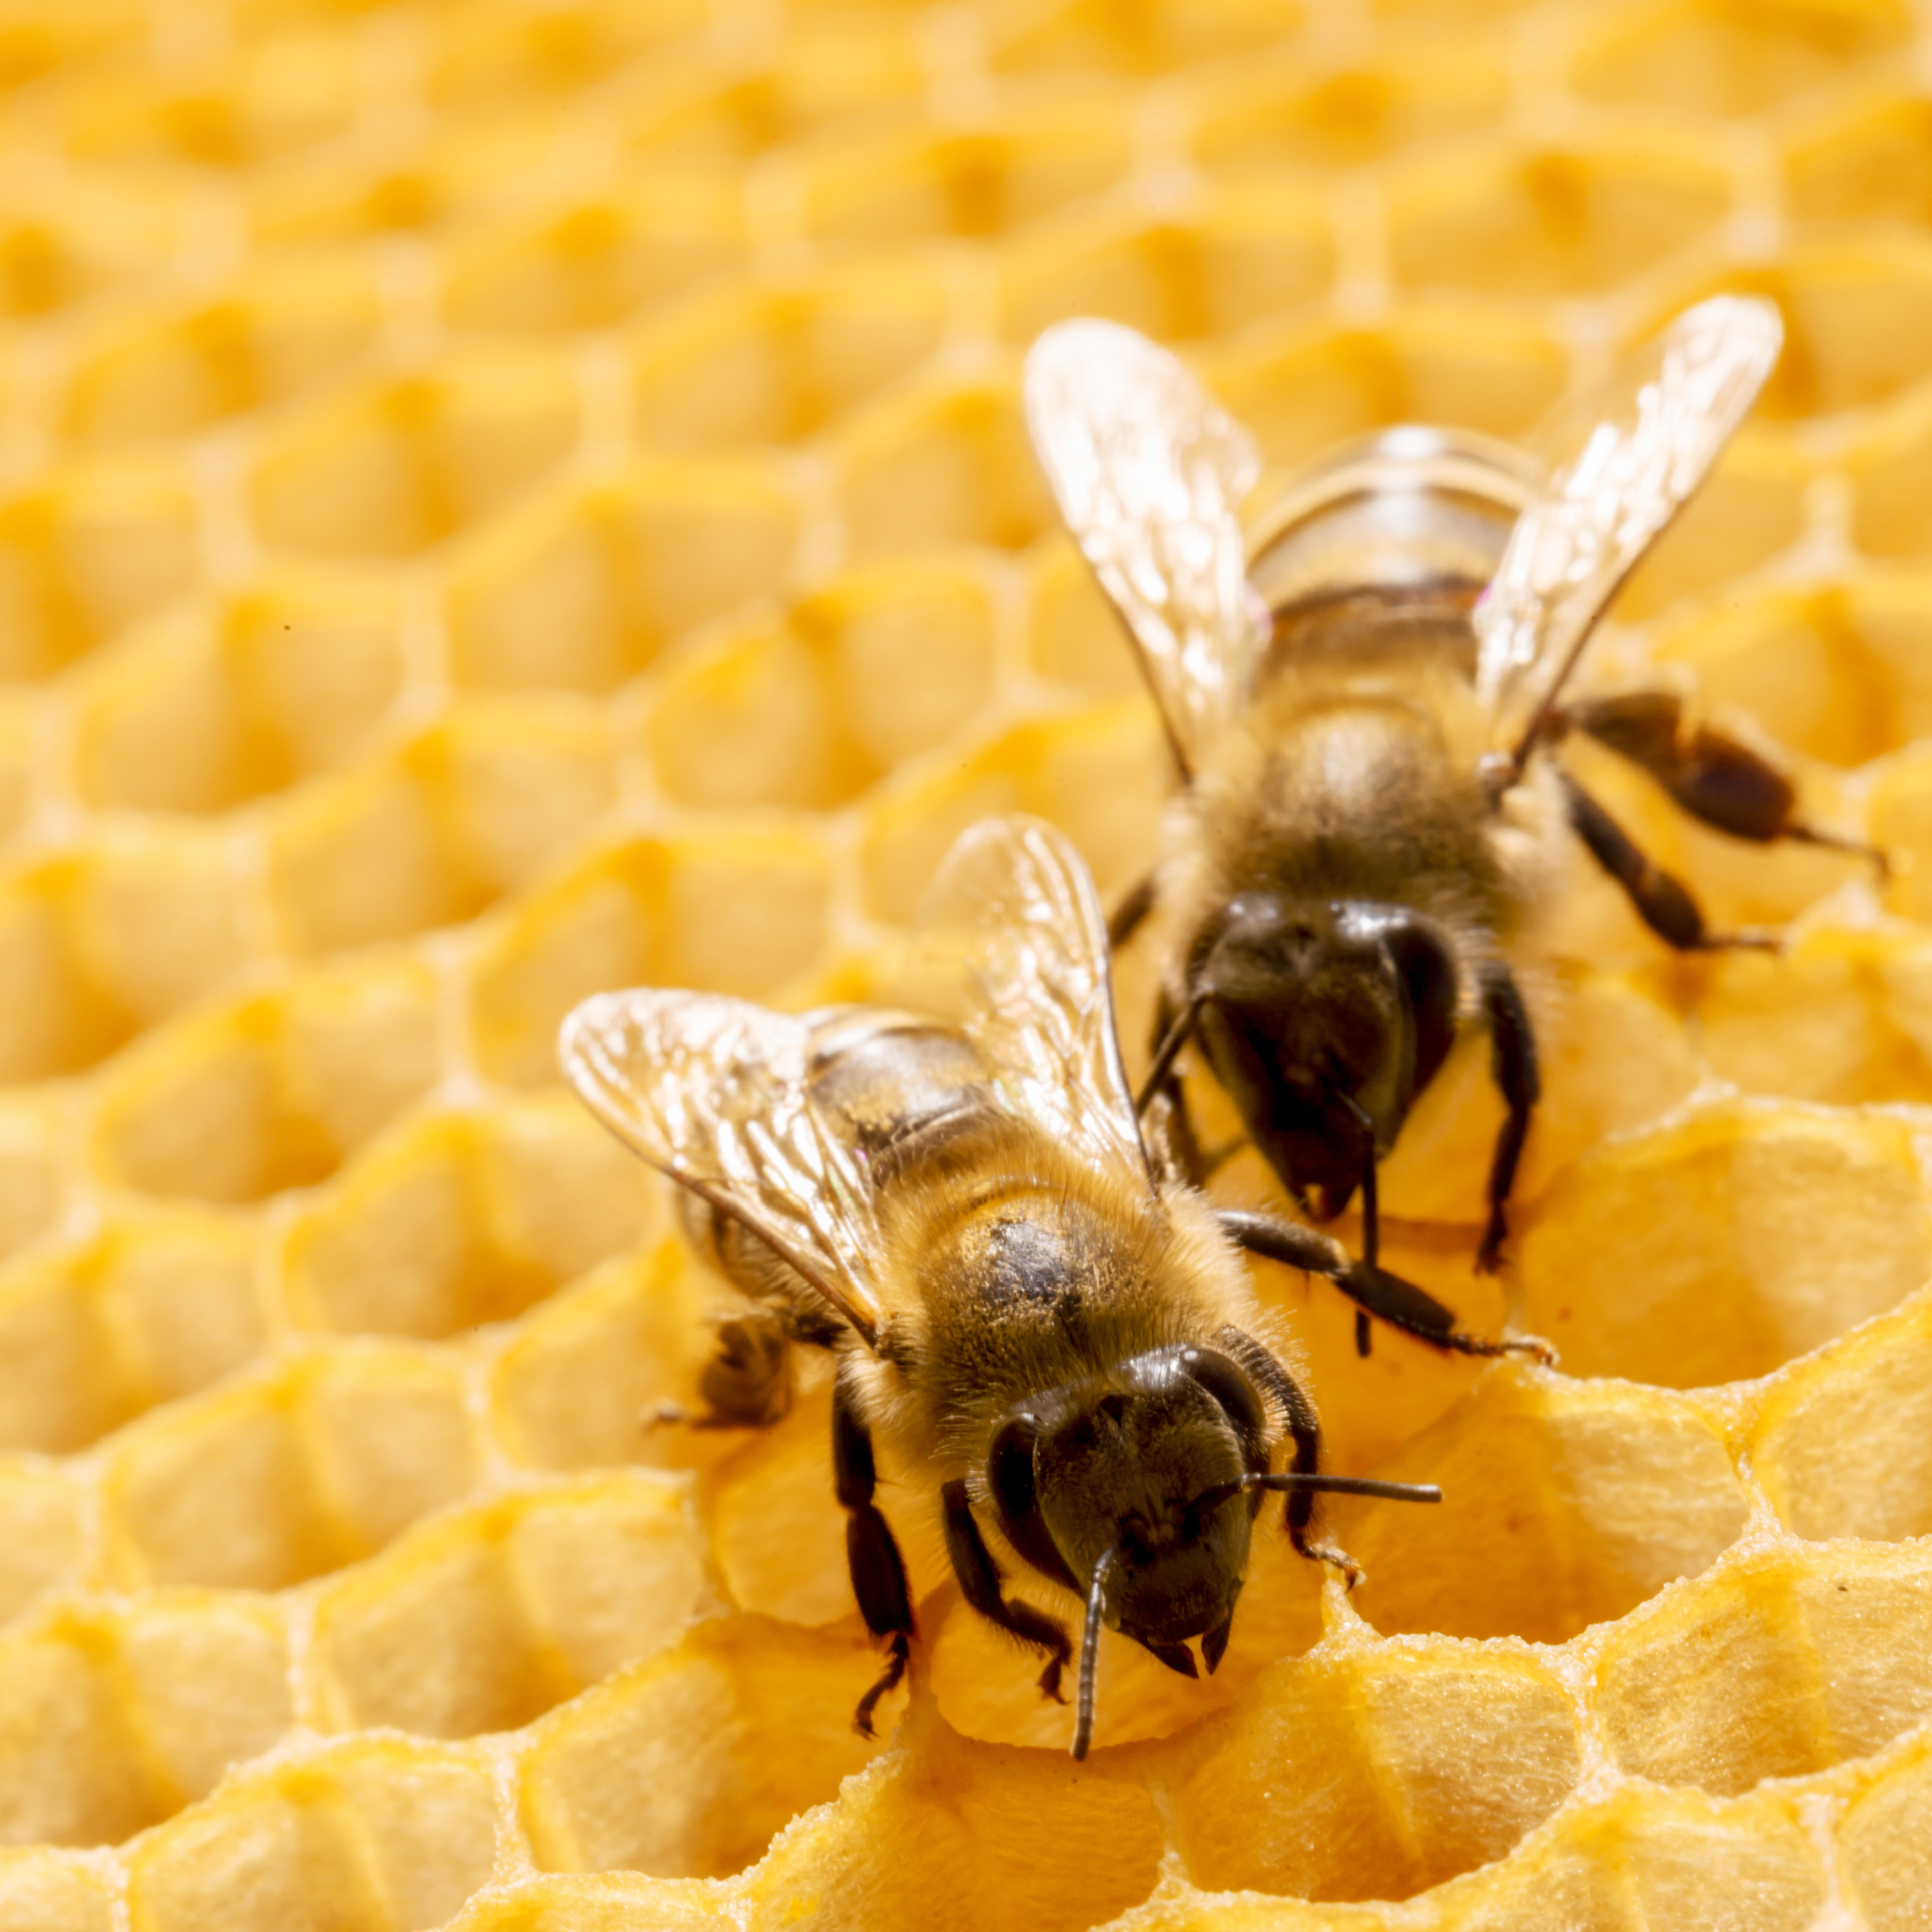 Bee Removal In Prosper Tx Why You Need Professional Help